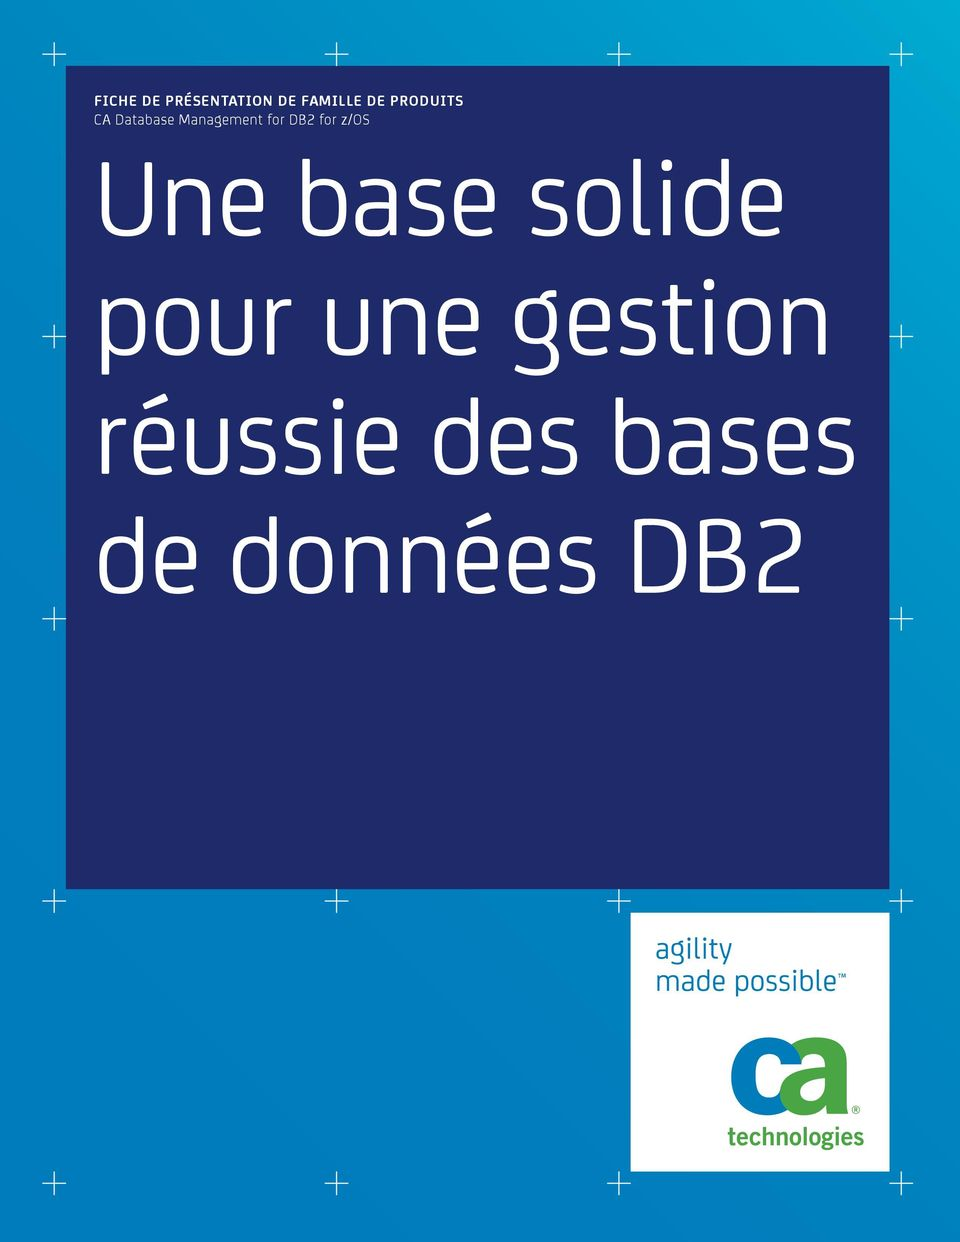 DB2 for z/os Une base solide pour une